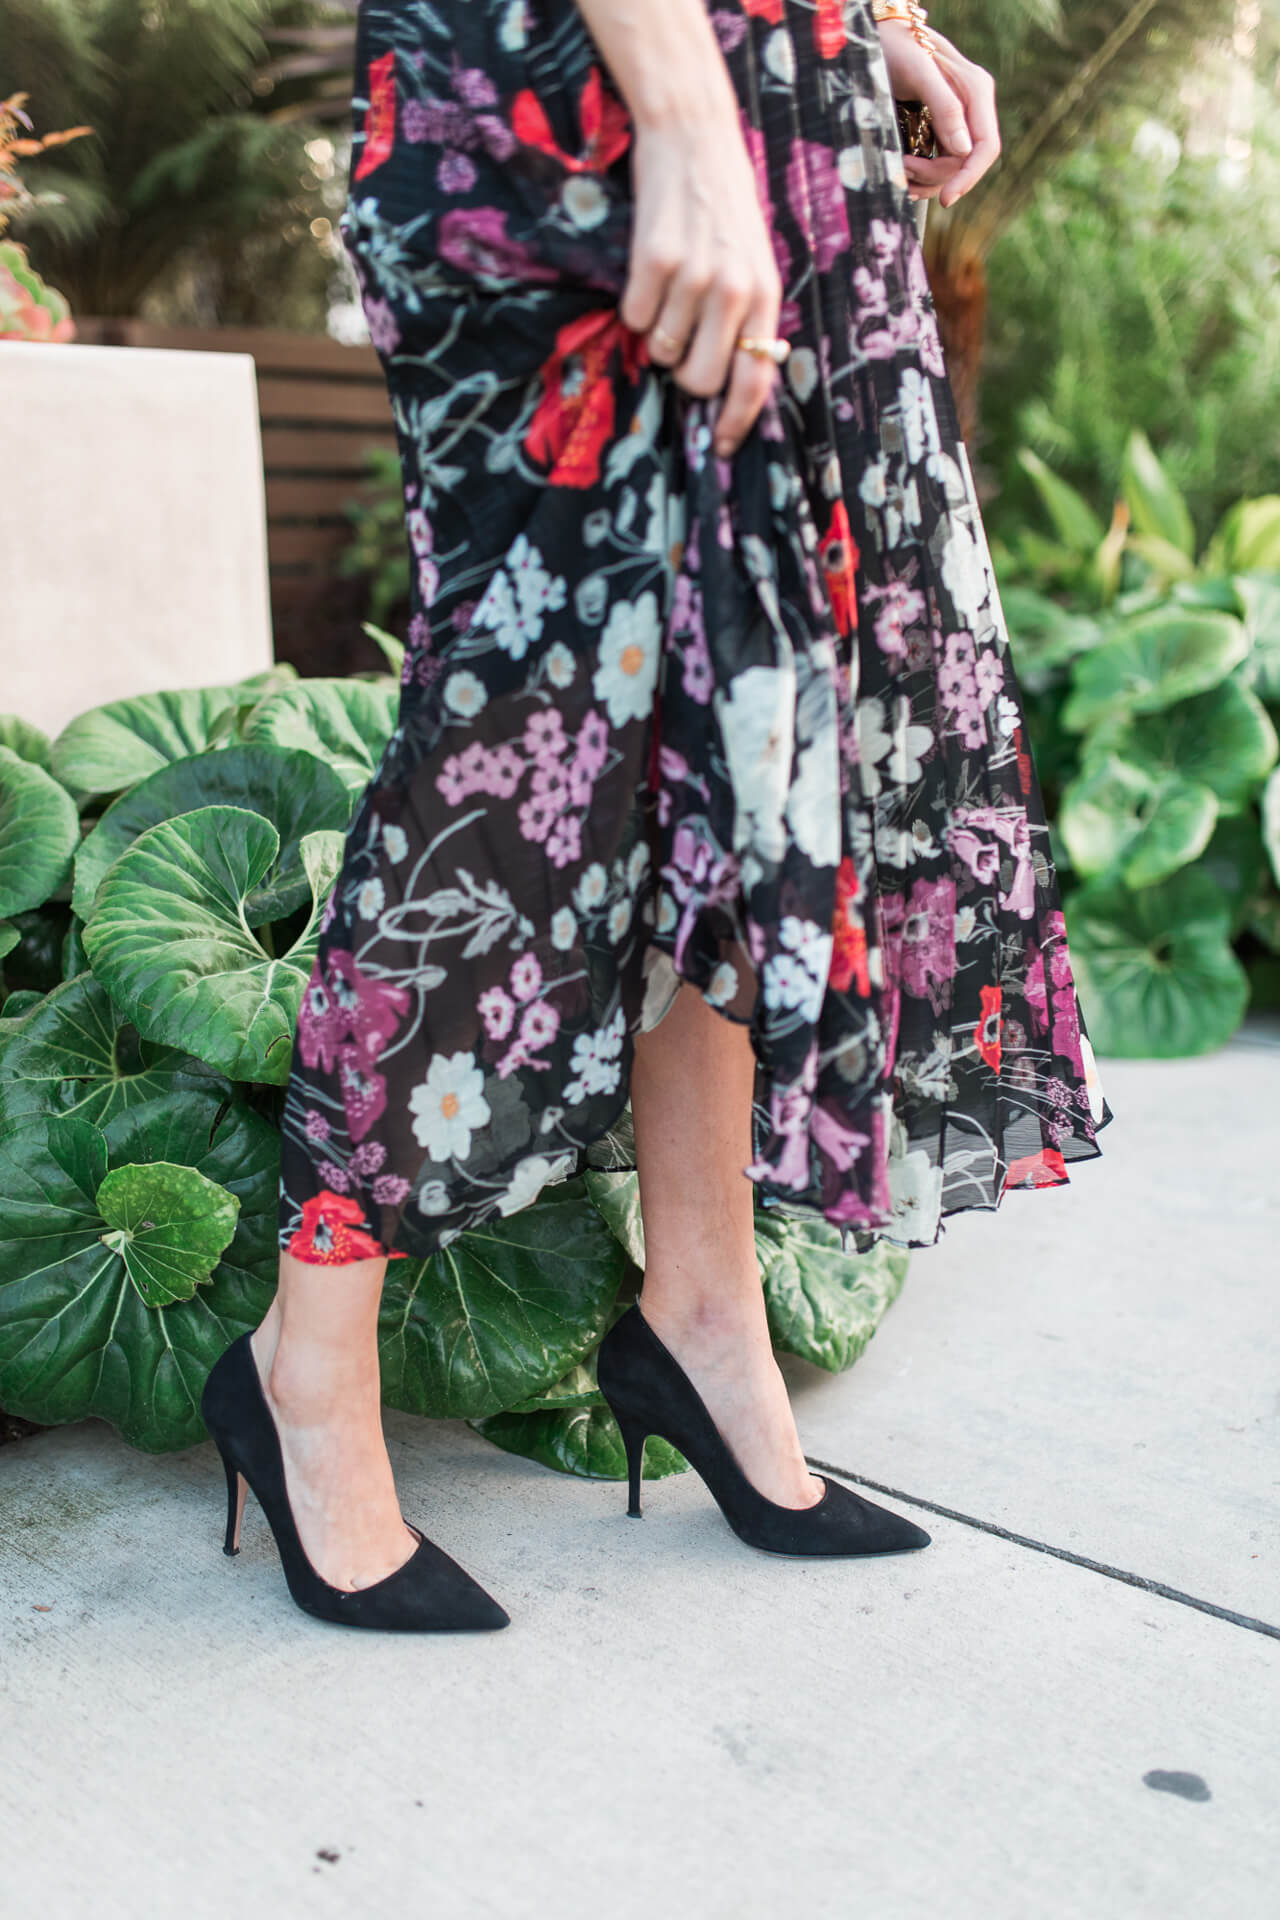 The perfect pumps for all seasons